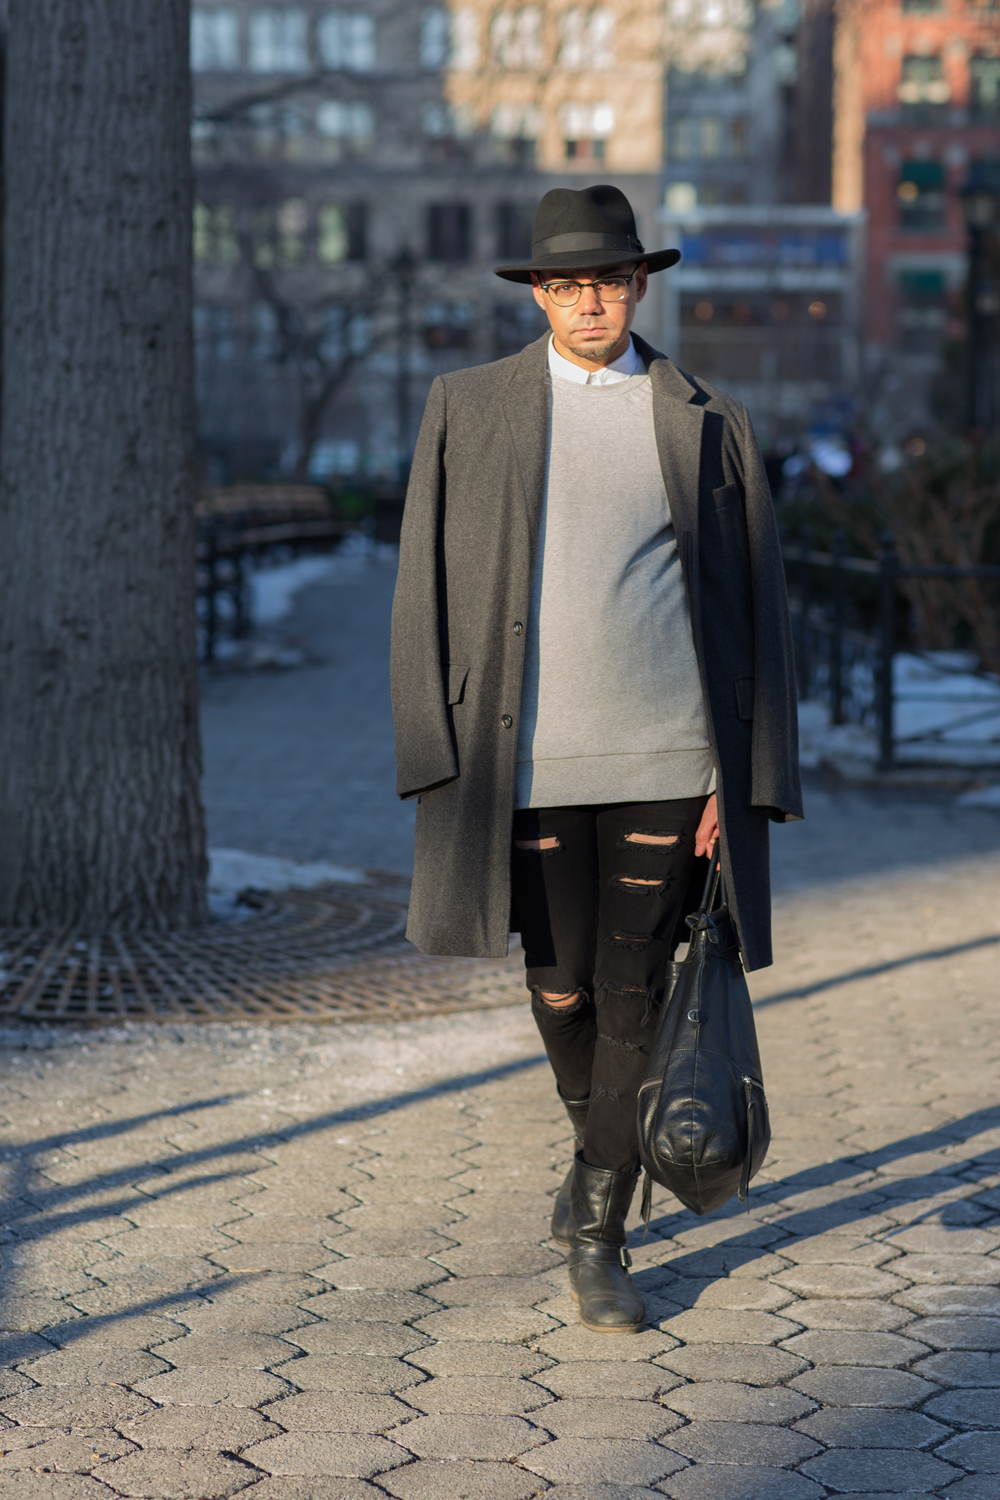 Overcoat: Retro Calvin Klein Collection; Sweater & Woven: Zara; Denim: Customized H&M; Boots: Aldo; Bag: Foley & Corinna